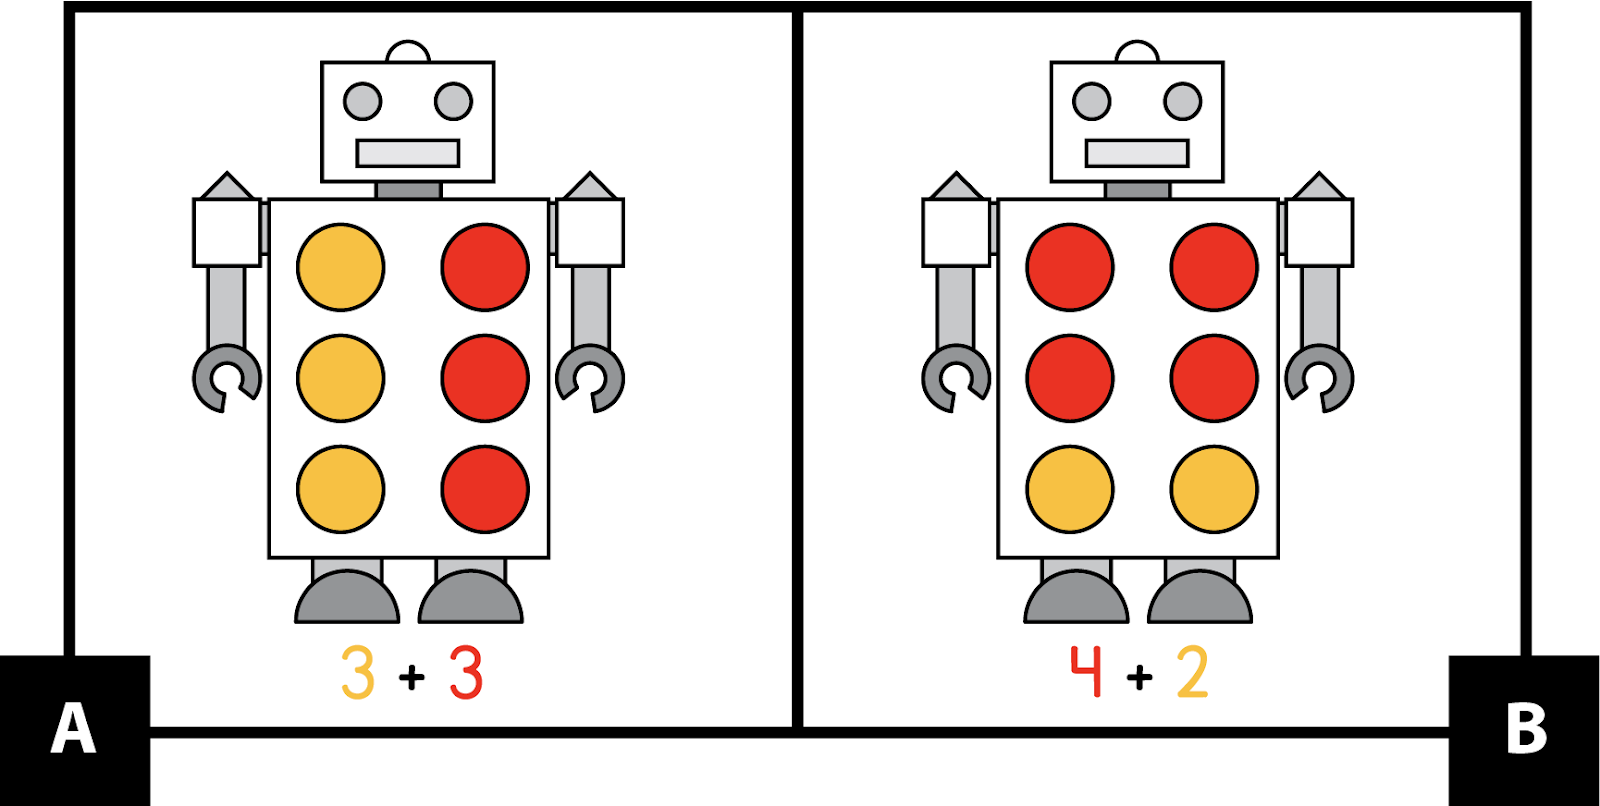 A: A robot with 3 yellow dots and 3 red dots. 3 + 3. B: A robot with 4 red dots and 2 yellow dots. 4 + 2.